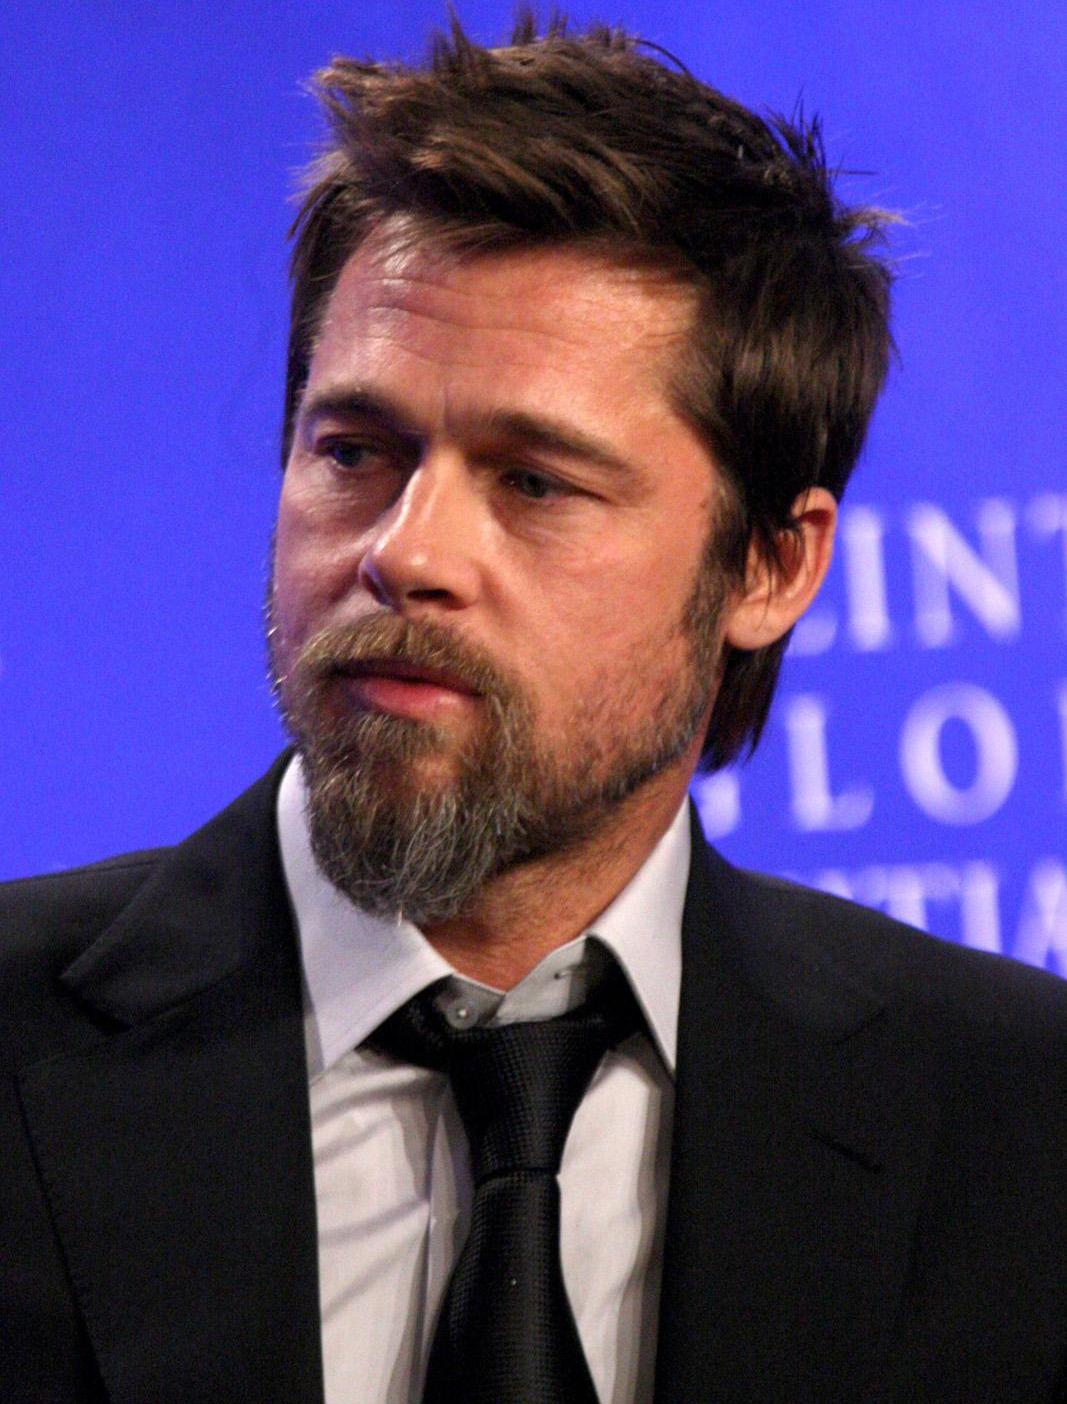 Hairstyles For Men Brad Pitt Hairstyles Documenting His